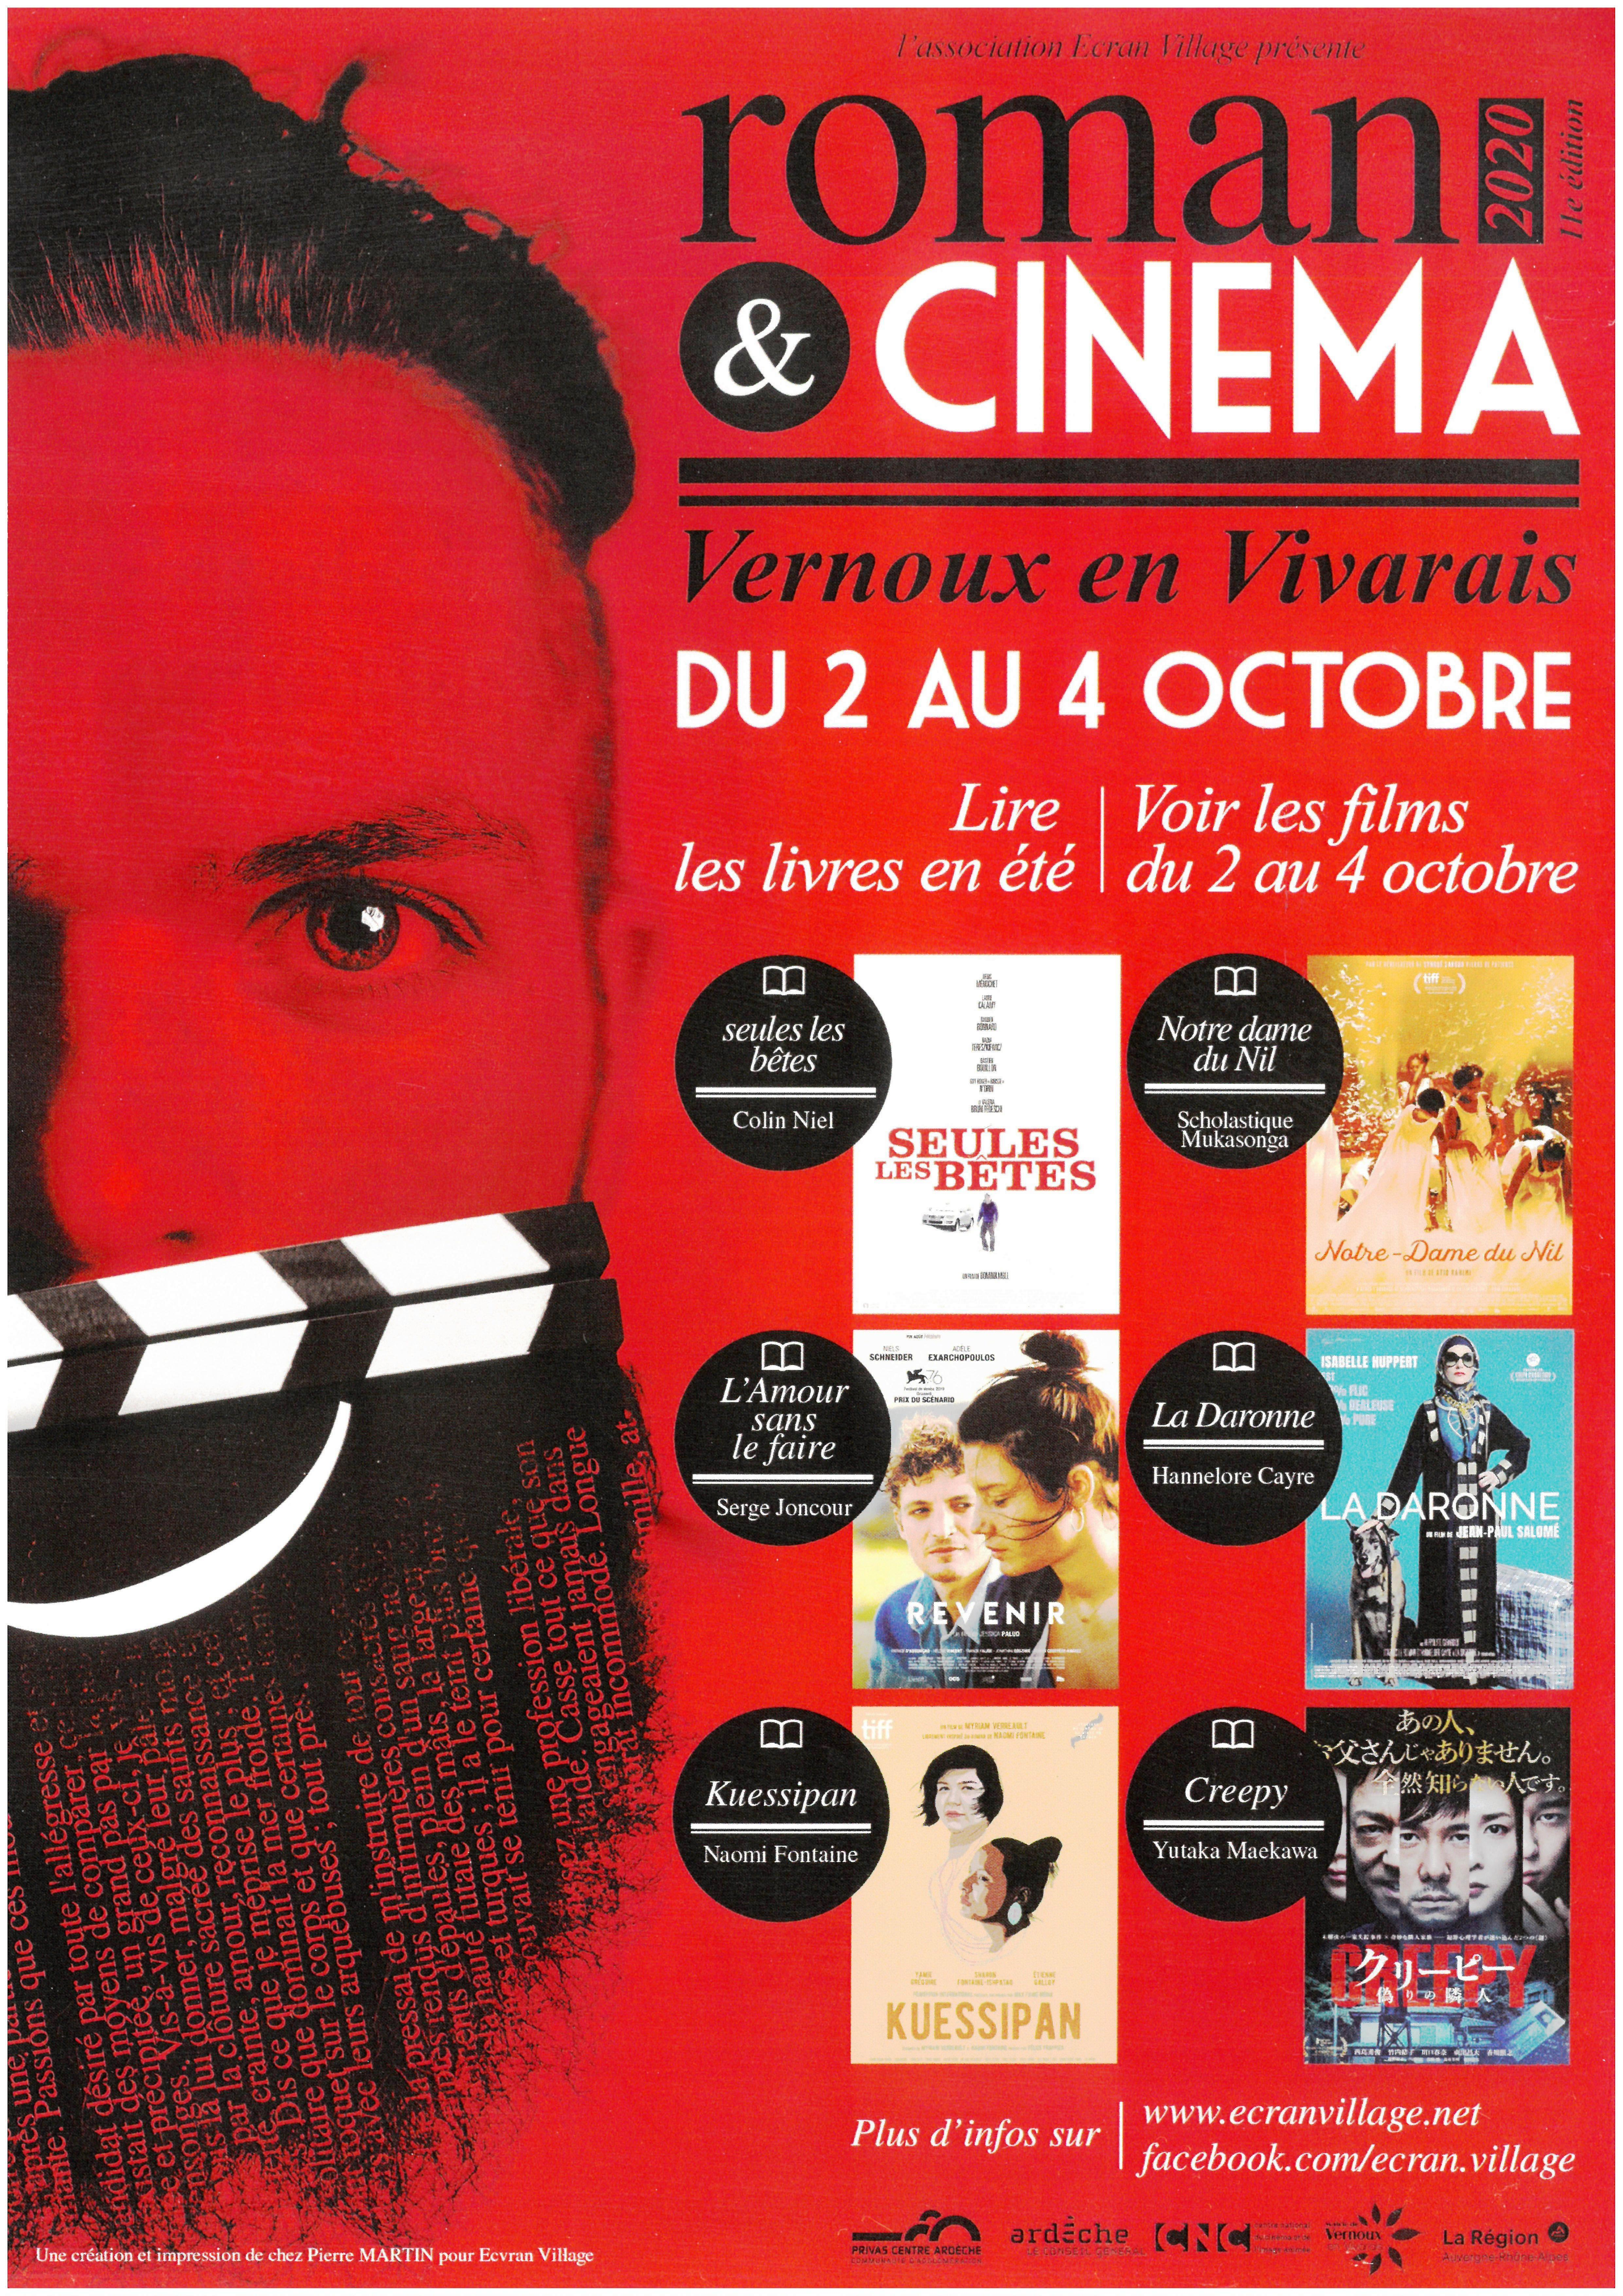 Events…Put it in your diary : Préparation du festival Roman & Cinéma (11ème édition)